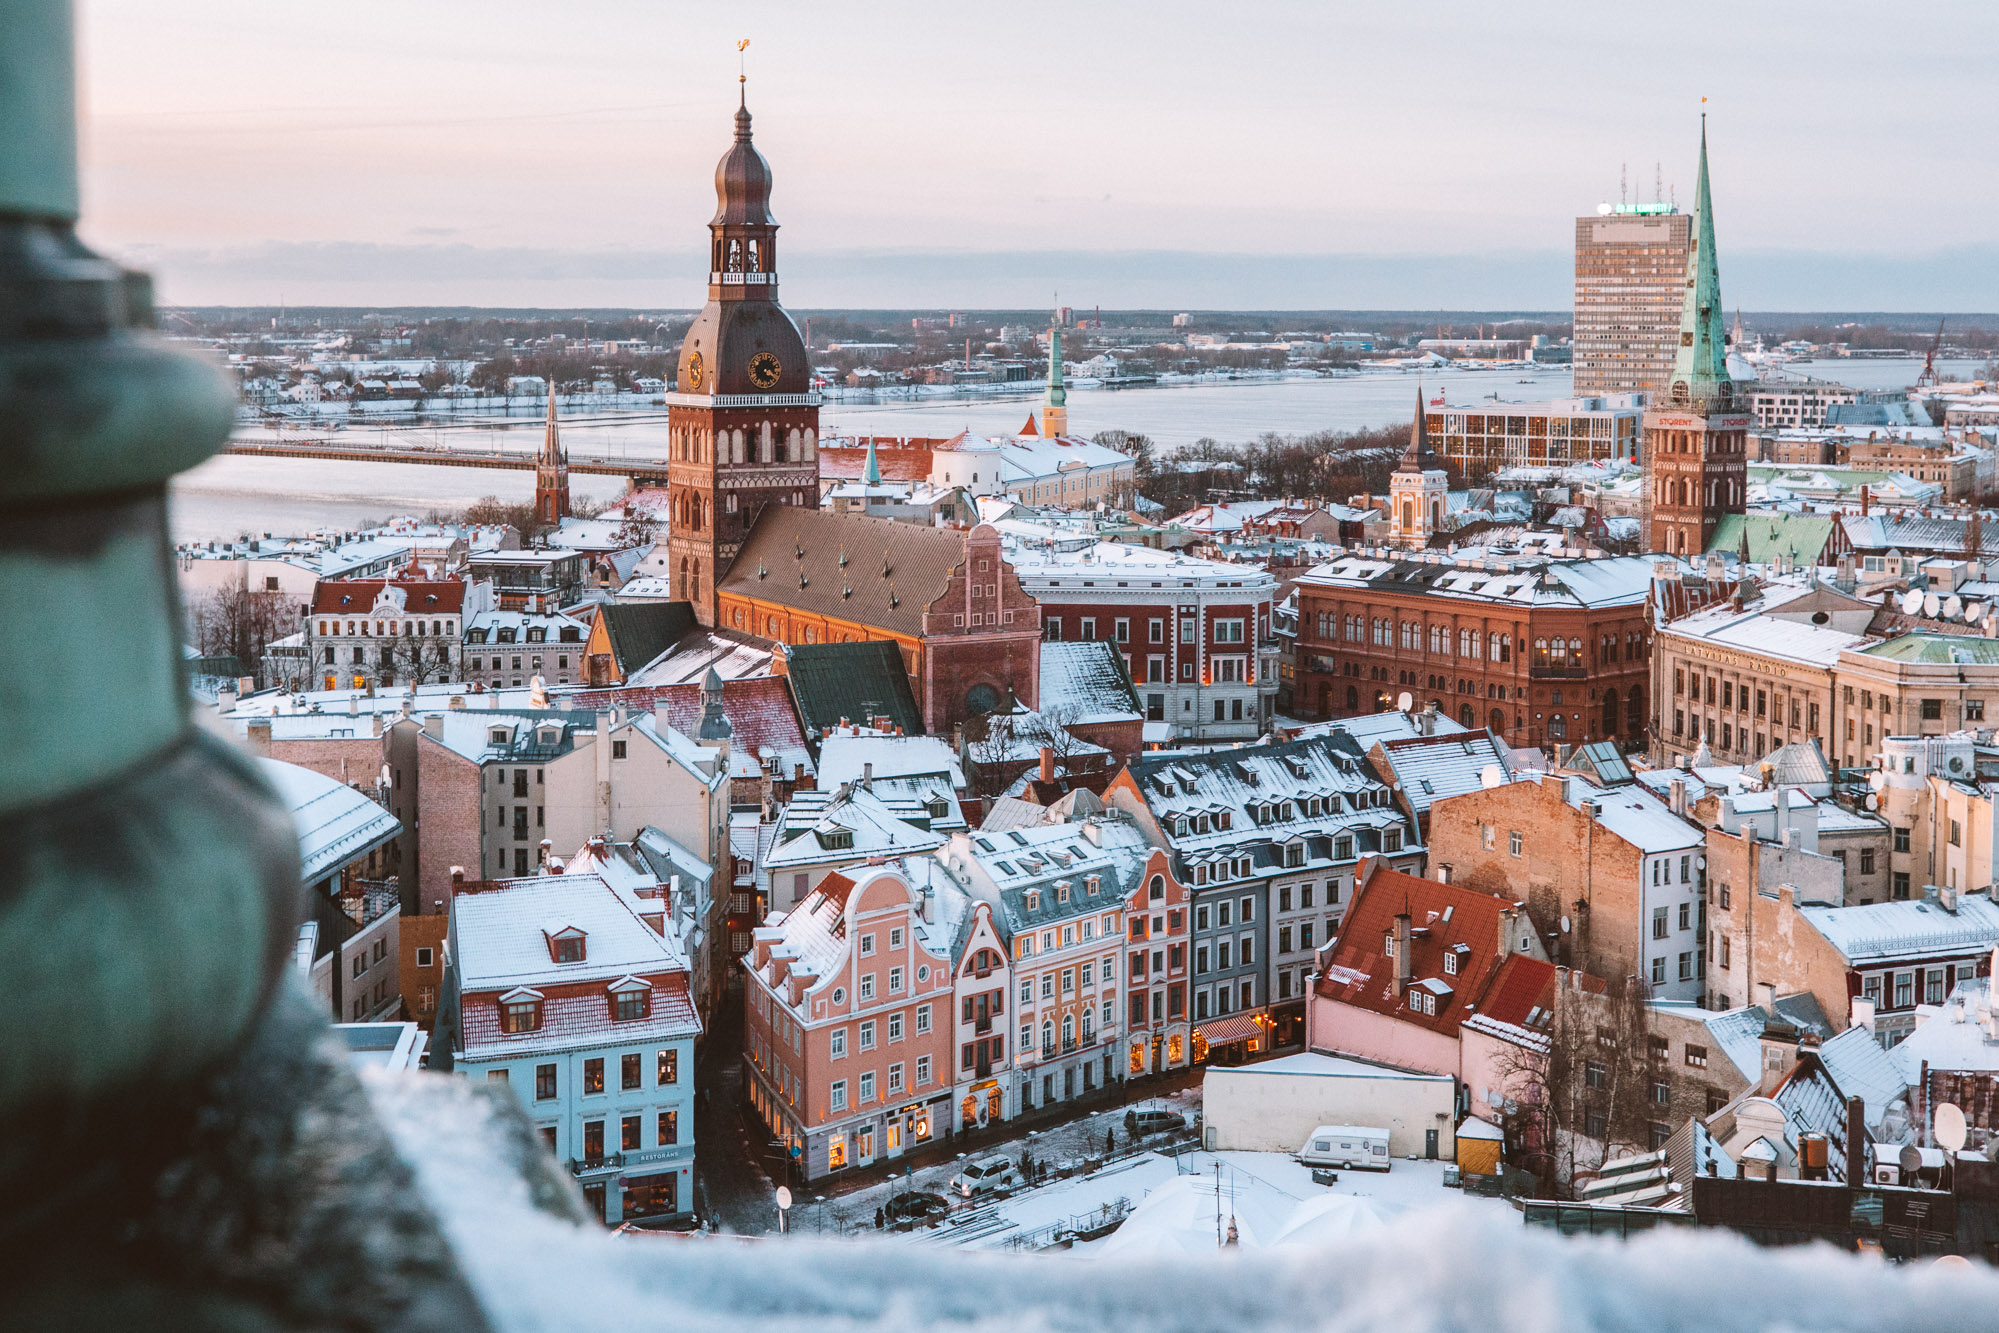 Riga Latvia St Peters Church View Near Christmas Market in Winter via @finduslost